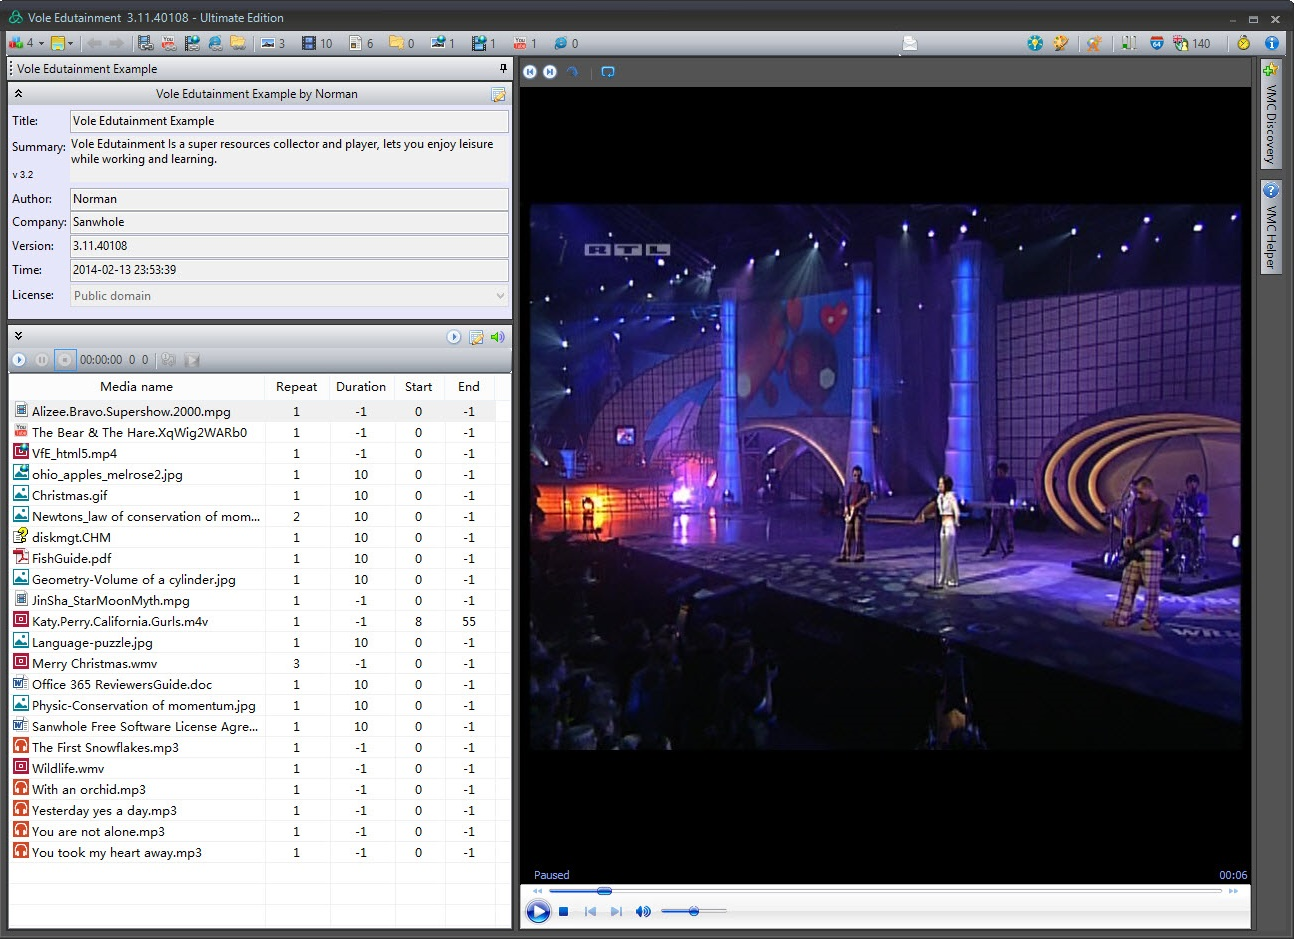 Vole Edutainment Professional Edition, Video Software Screenshot